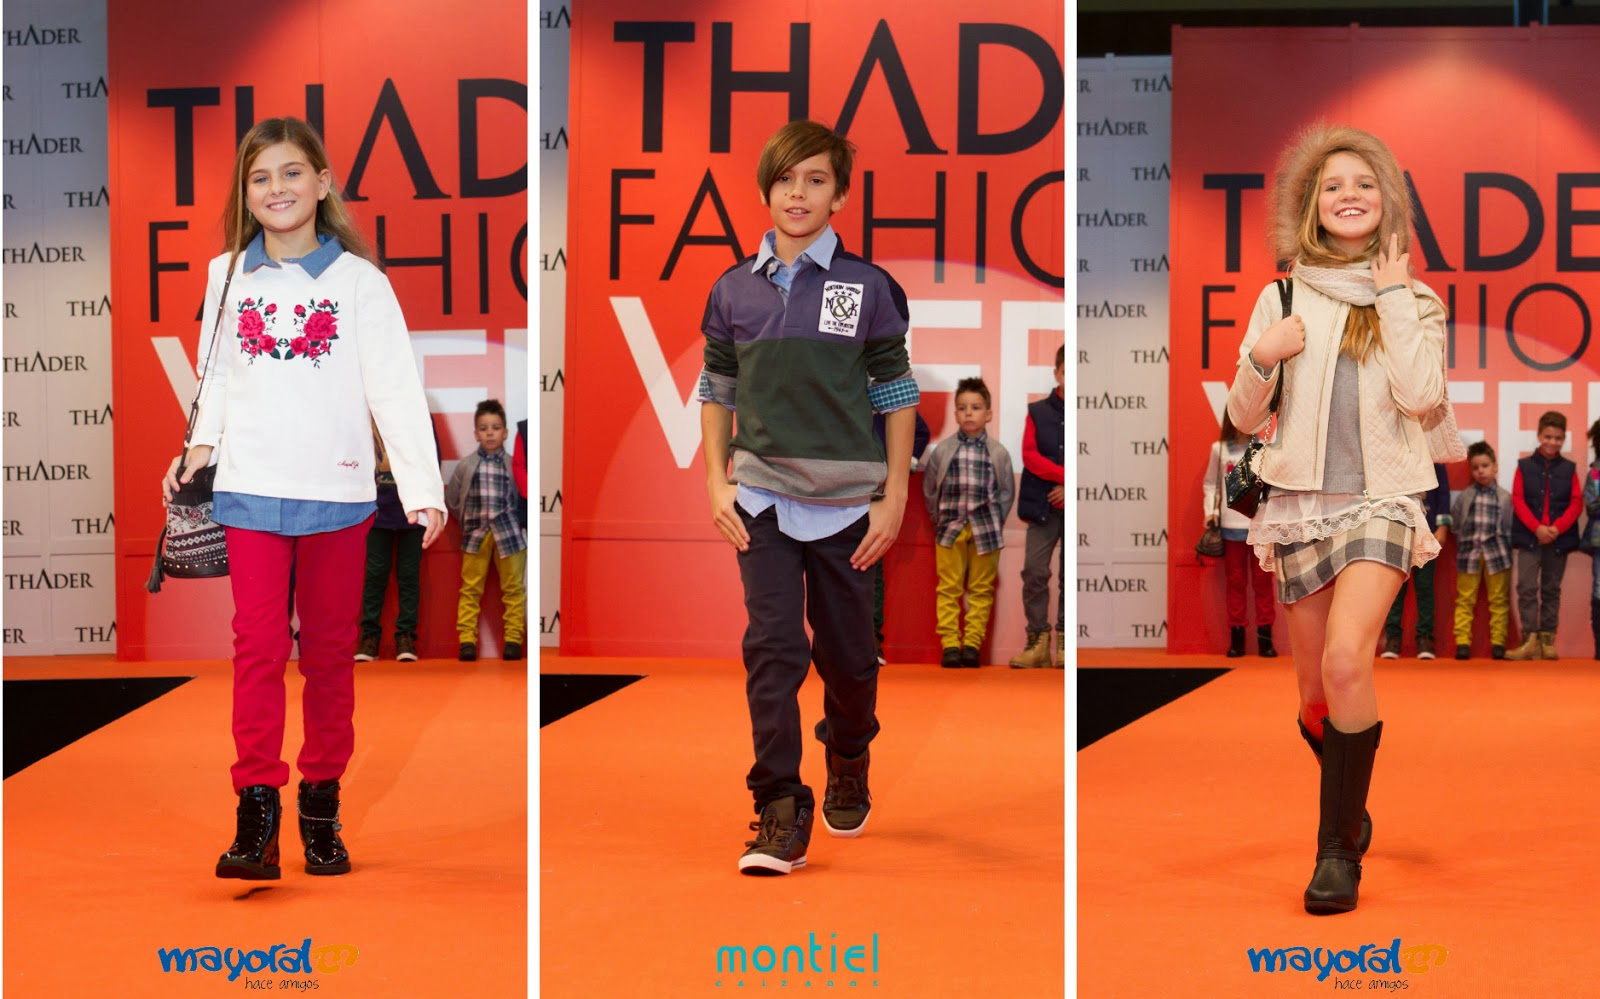 Thader Fashion Week